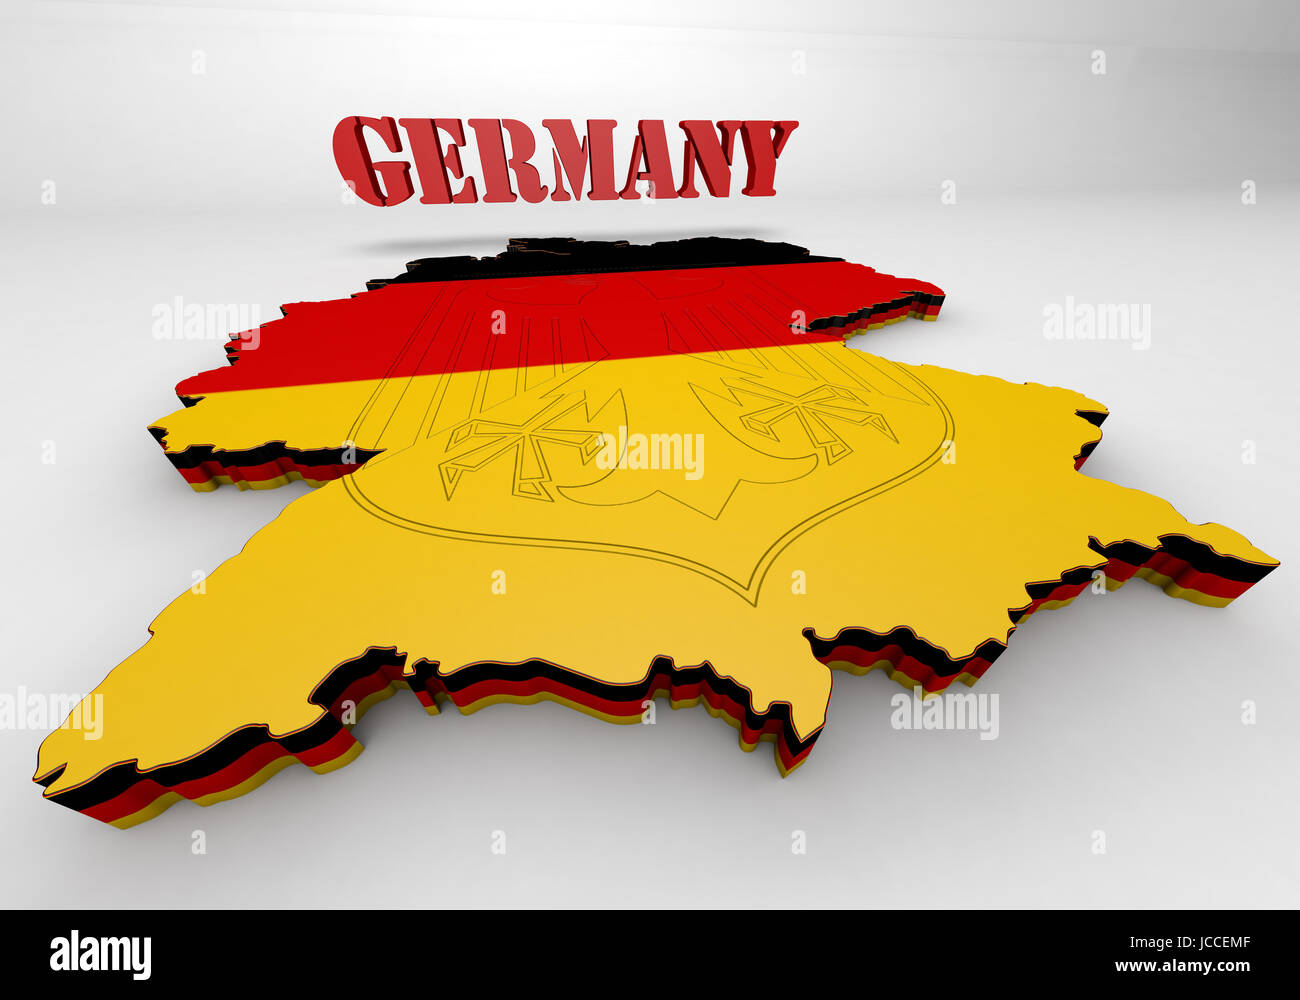 Map Of Germany 3d.3d Map Illustration Of Germany With Flag Stock Photo 145333791 Alamy